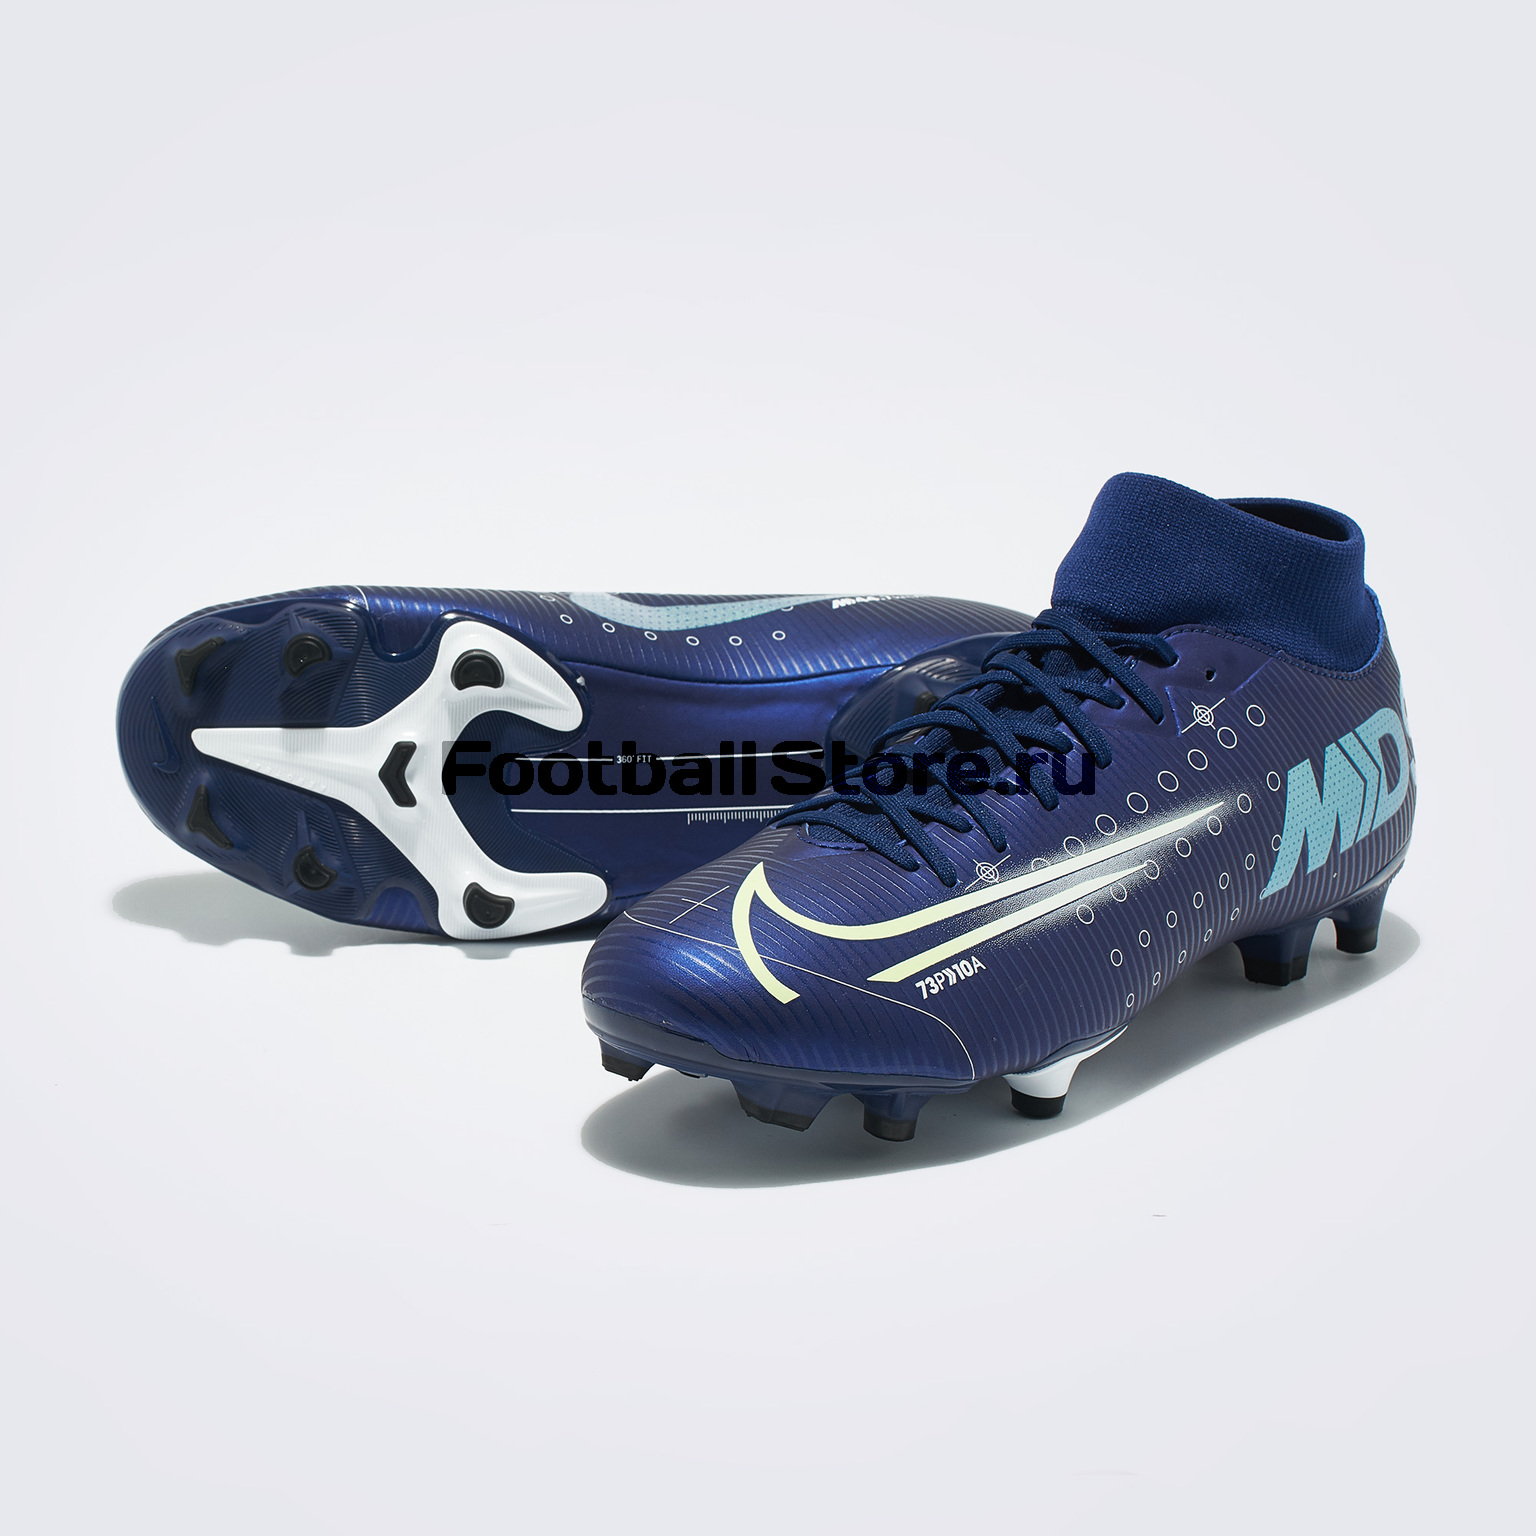 Бутсы Nike Superfly 7 Academy MDS FG/MG BQ5427-401 все цены